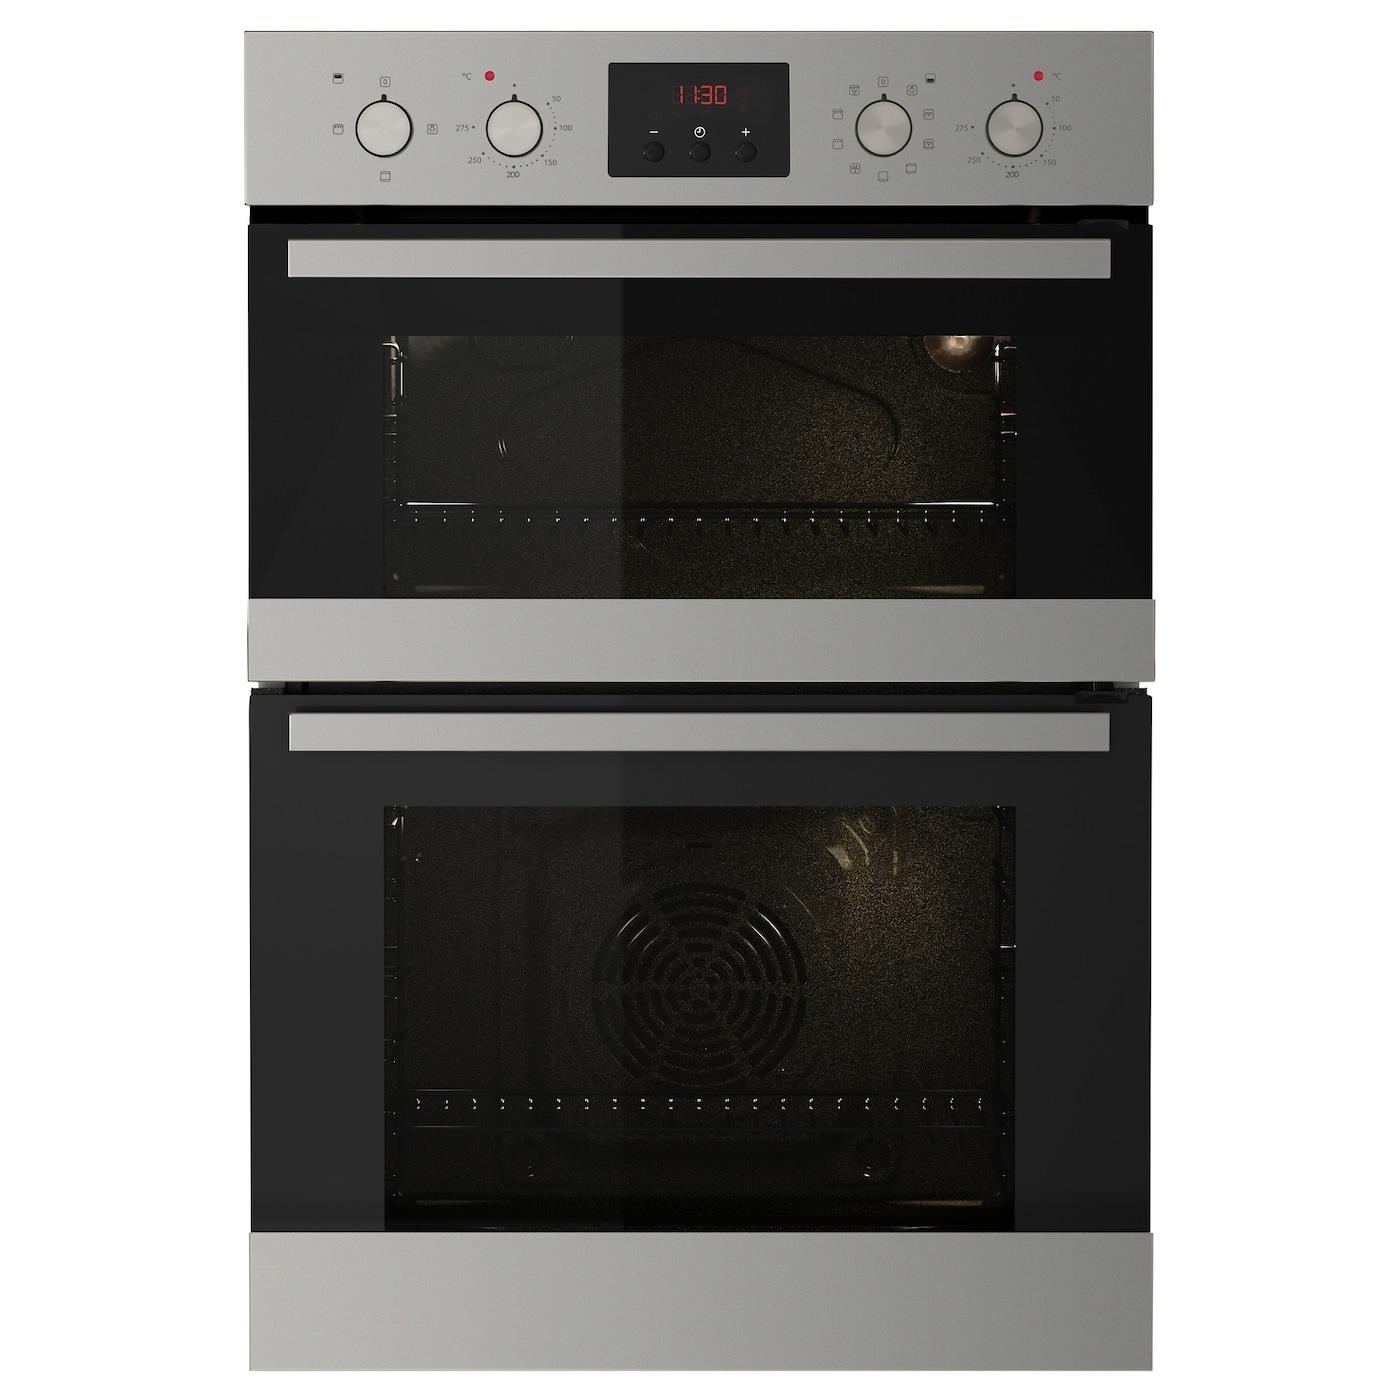 Uncategorized Ikea Kitchen Appliances kitchen appliances ikea valfri double oven 5 year guarantee read about the terms in brochure